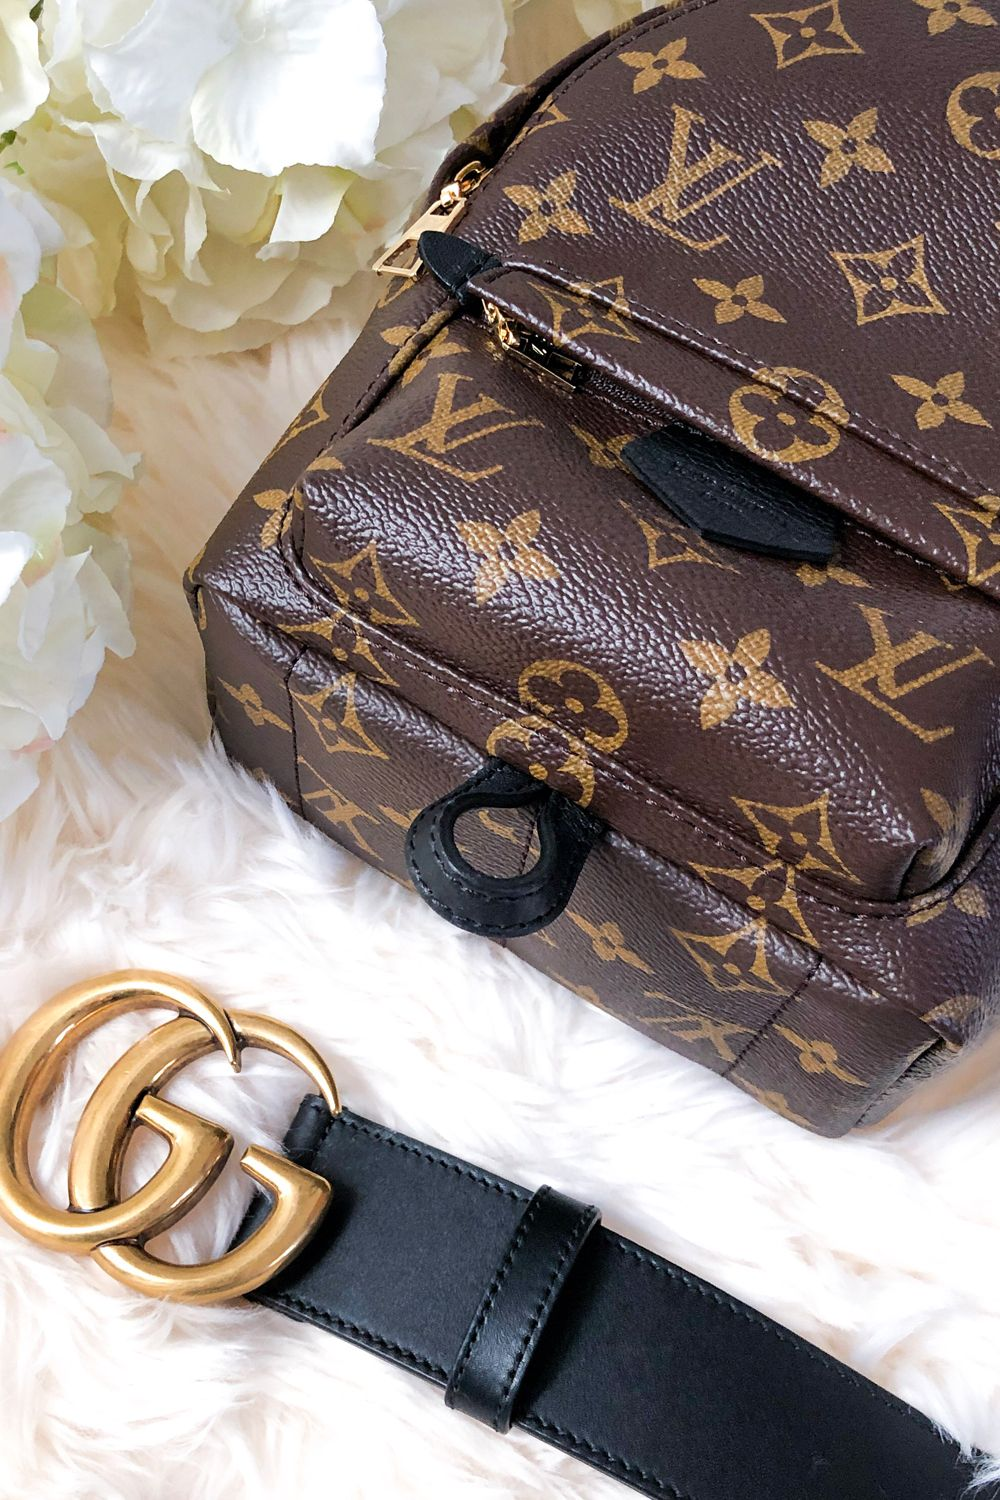 Louis Vuitton Palm Springs Mini Backpack with Gucci Belt